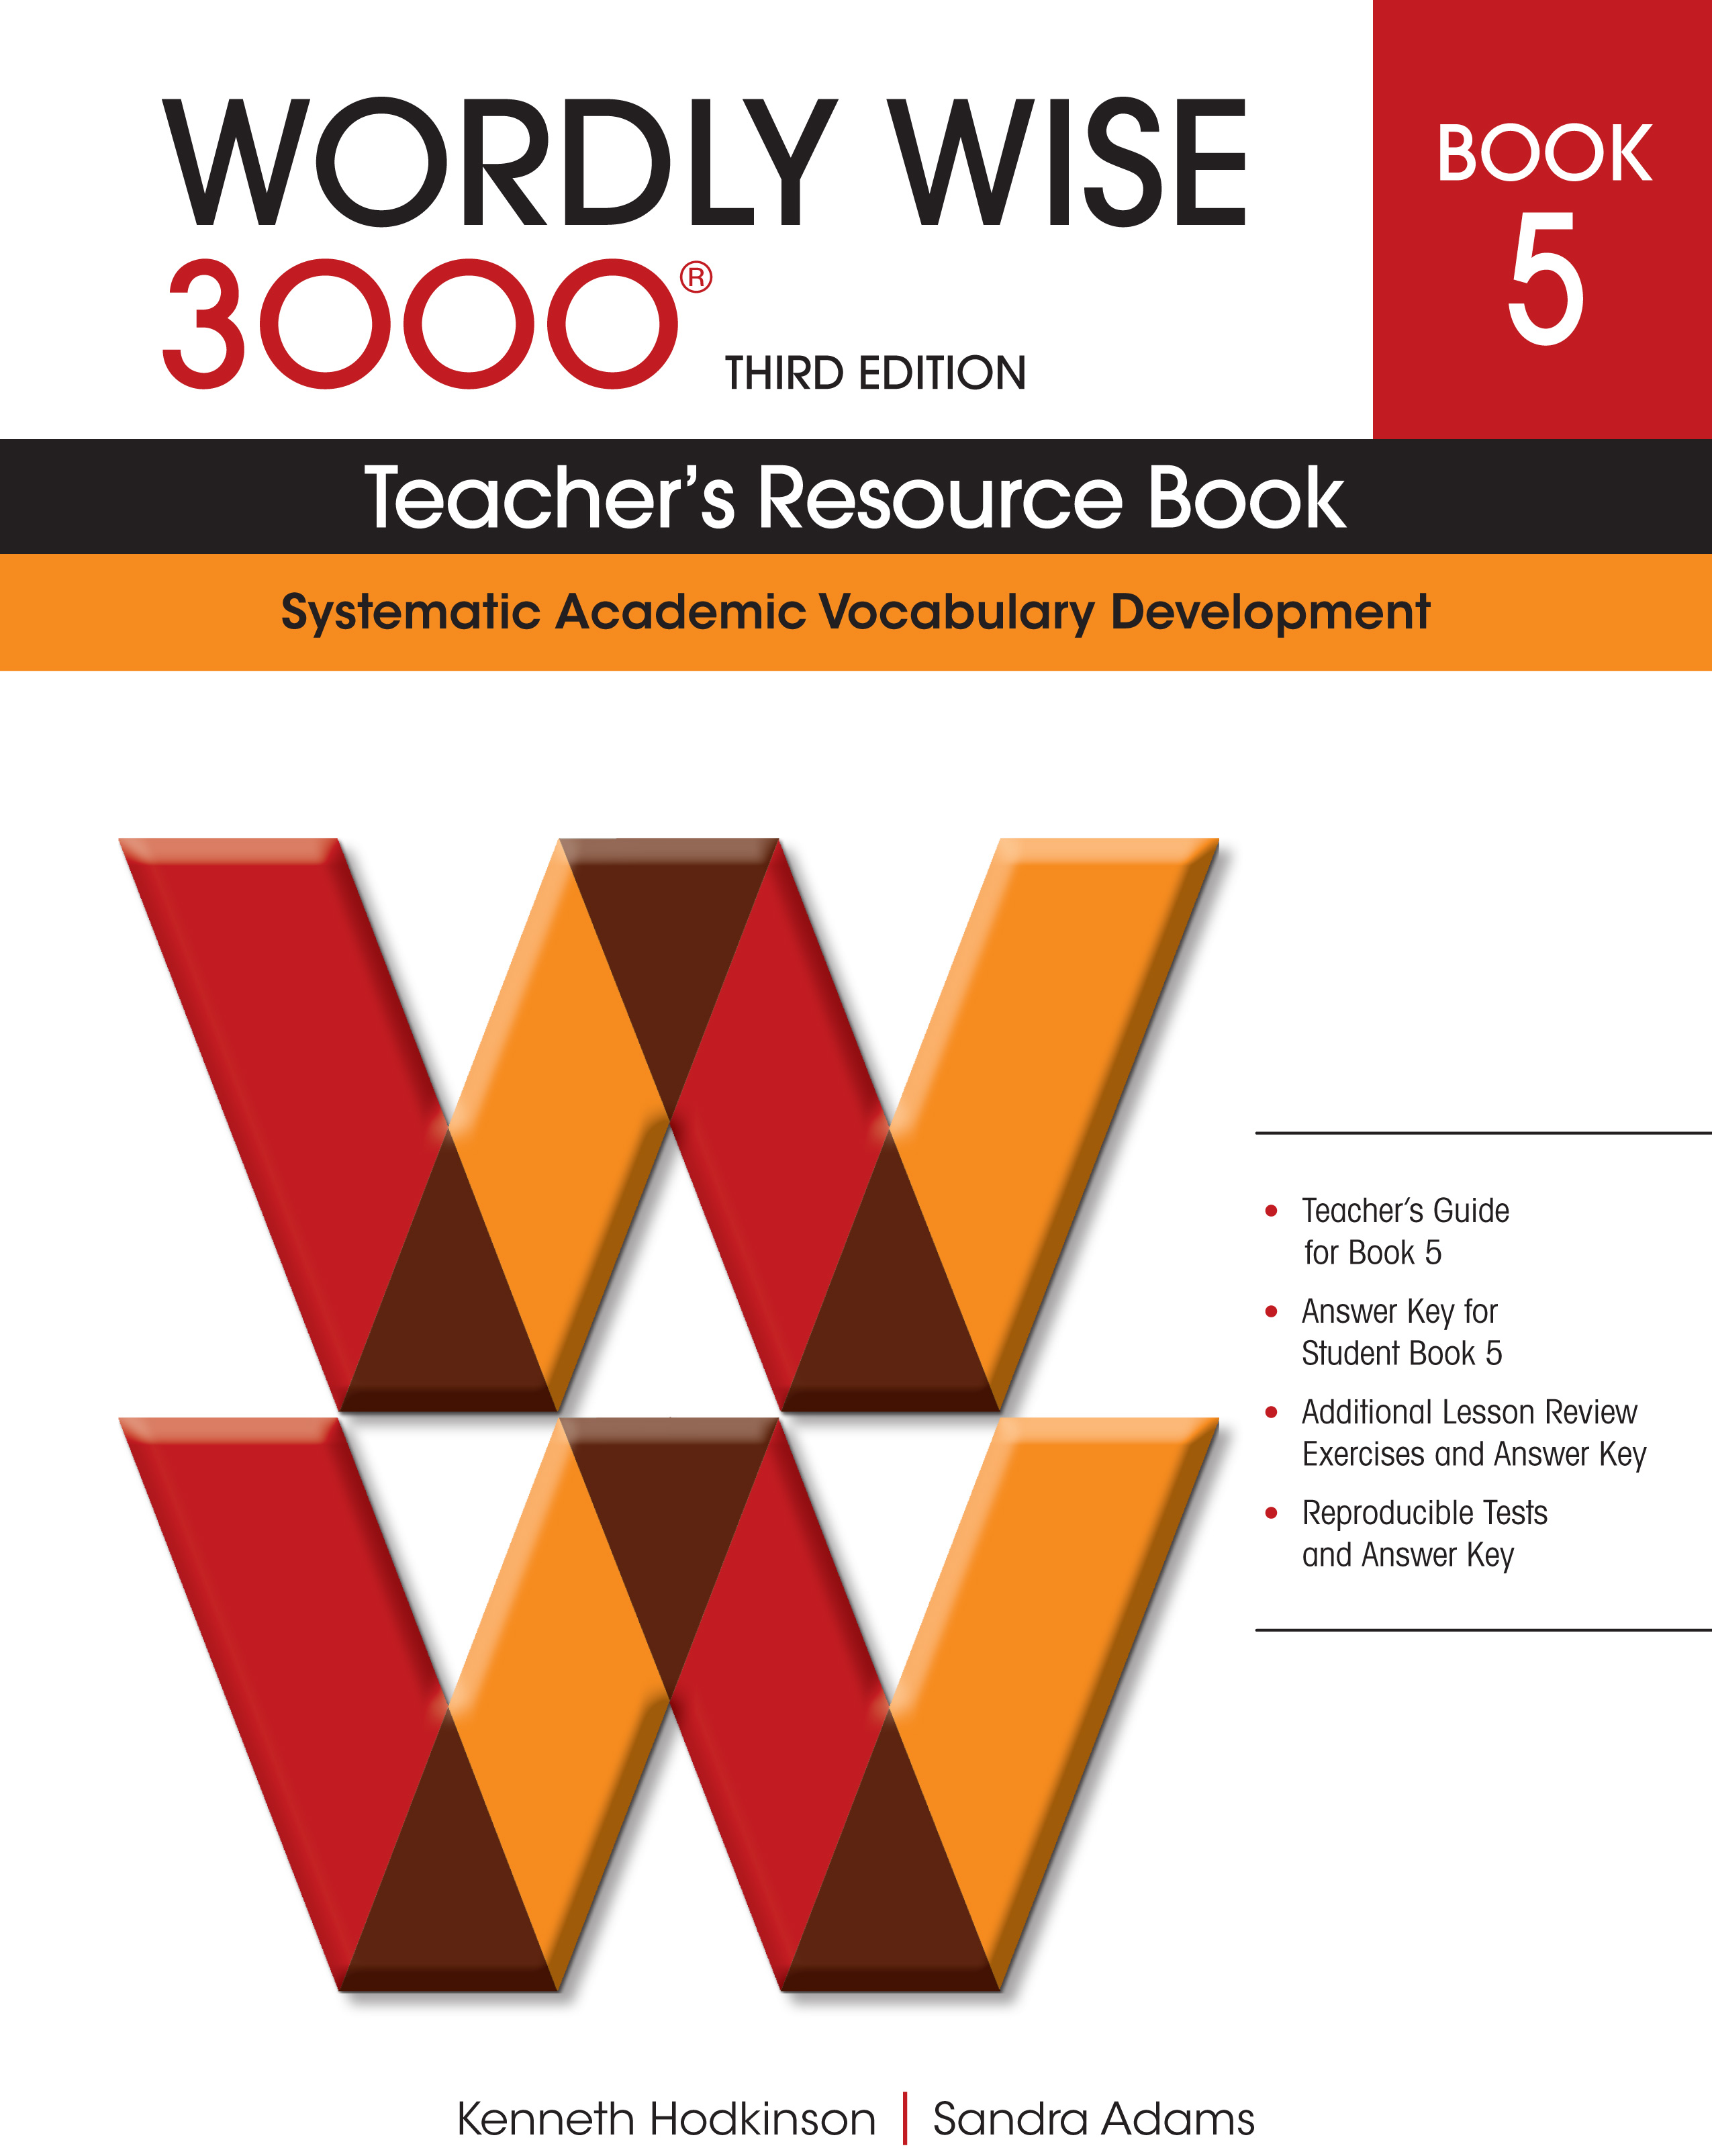 Wordly Wise 3000 Student Book 9 (3rd Edition) - FREE SHIPPING ! ! !